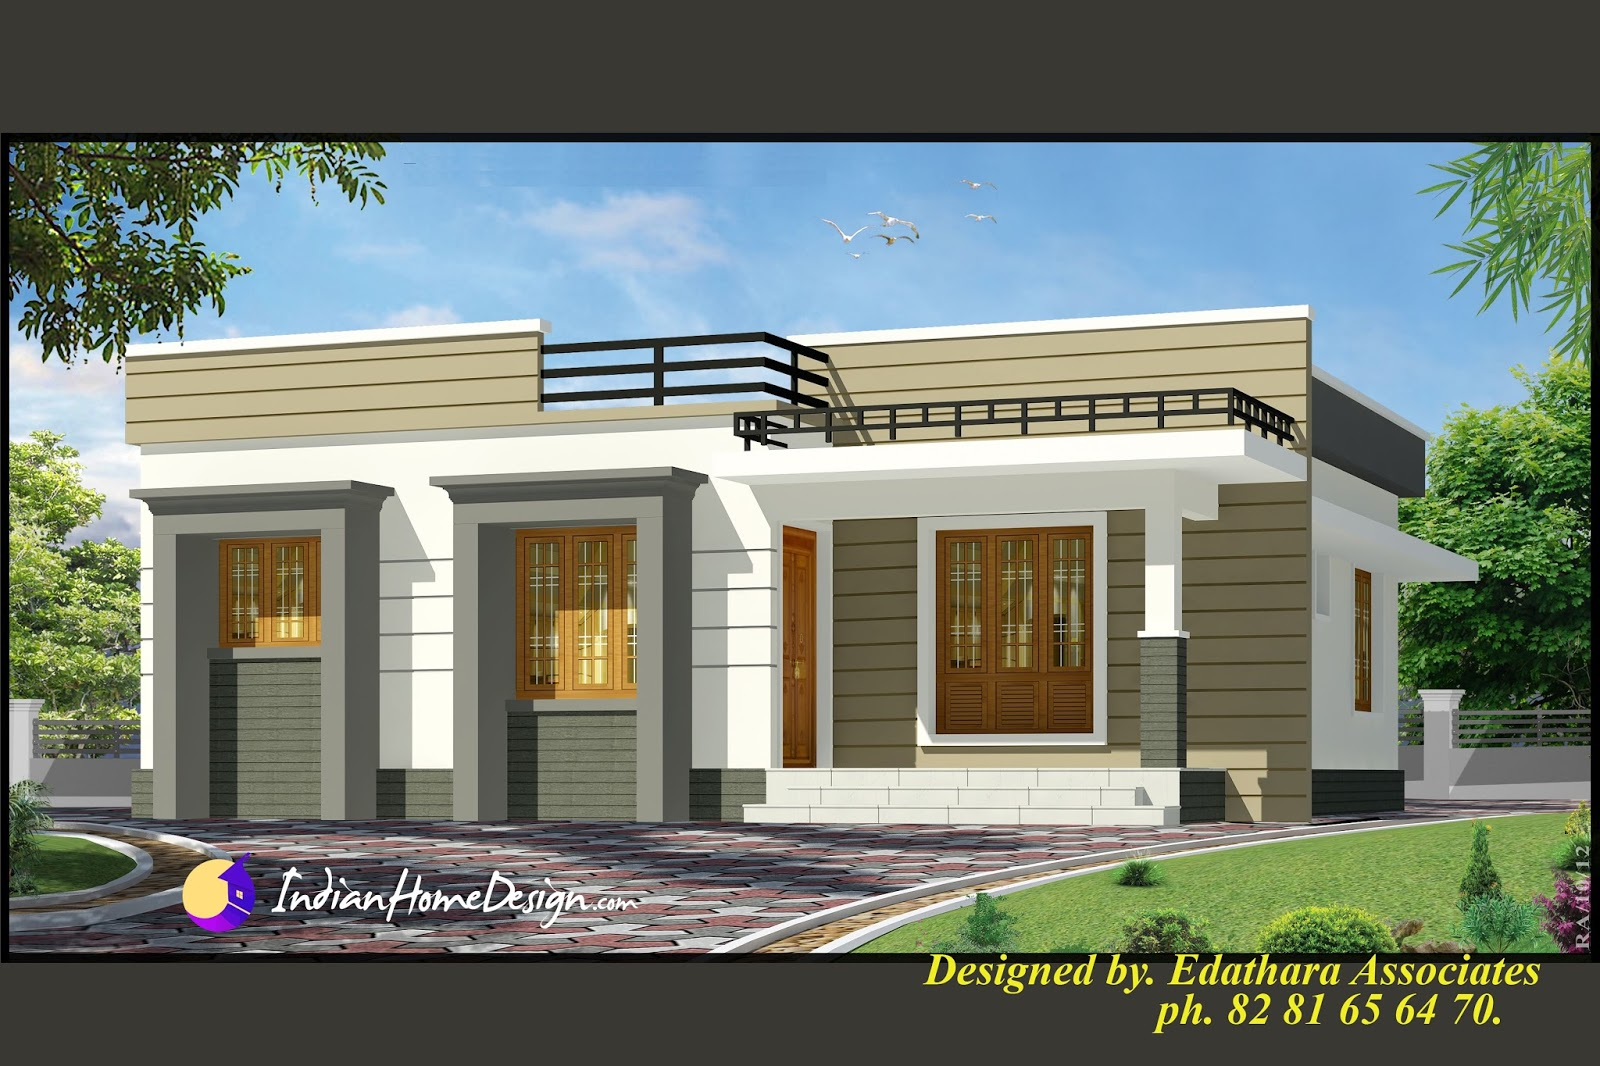 998 sqft modern single floor kerala home design indian for Home designs single floor